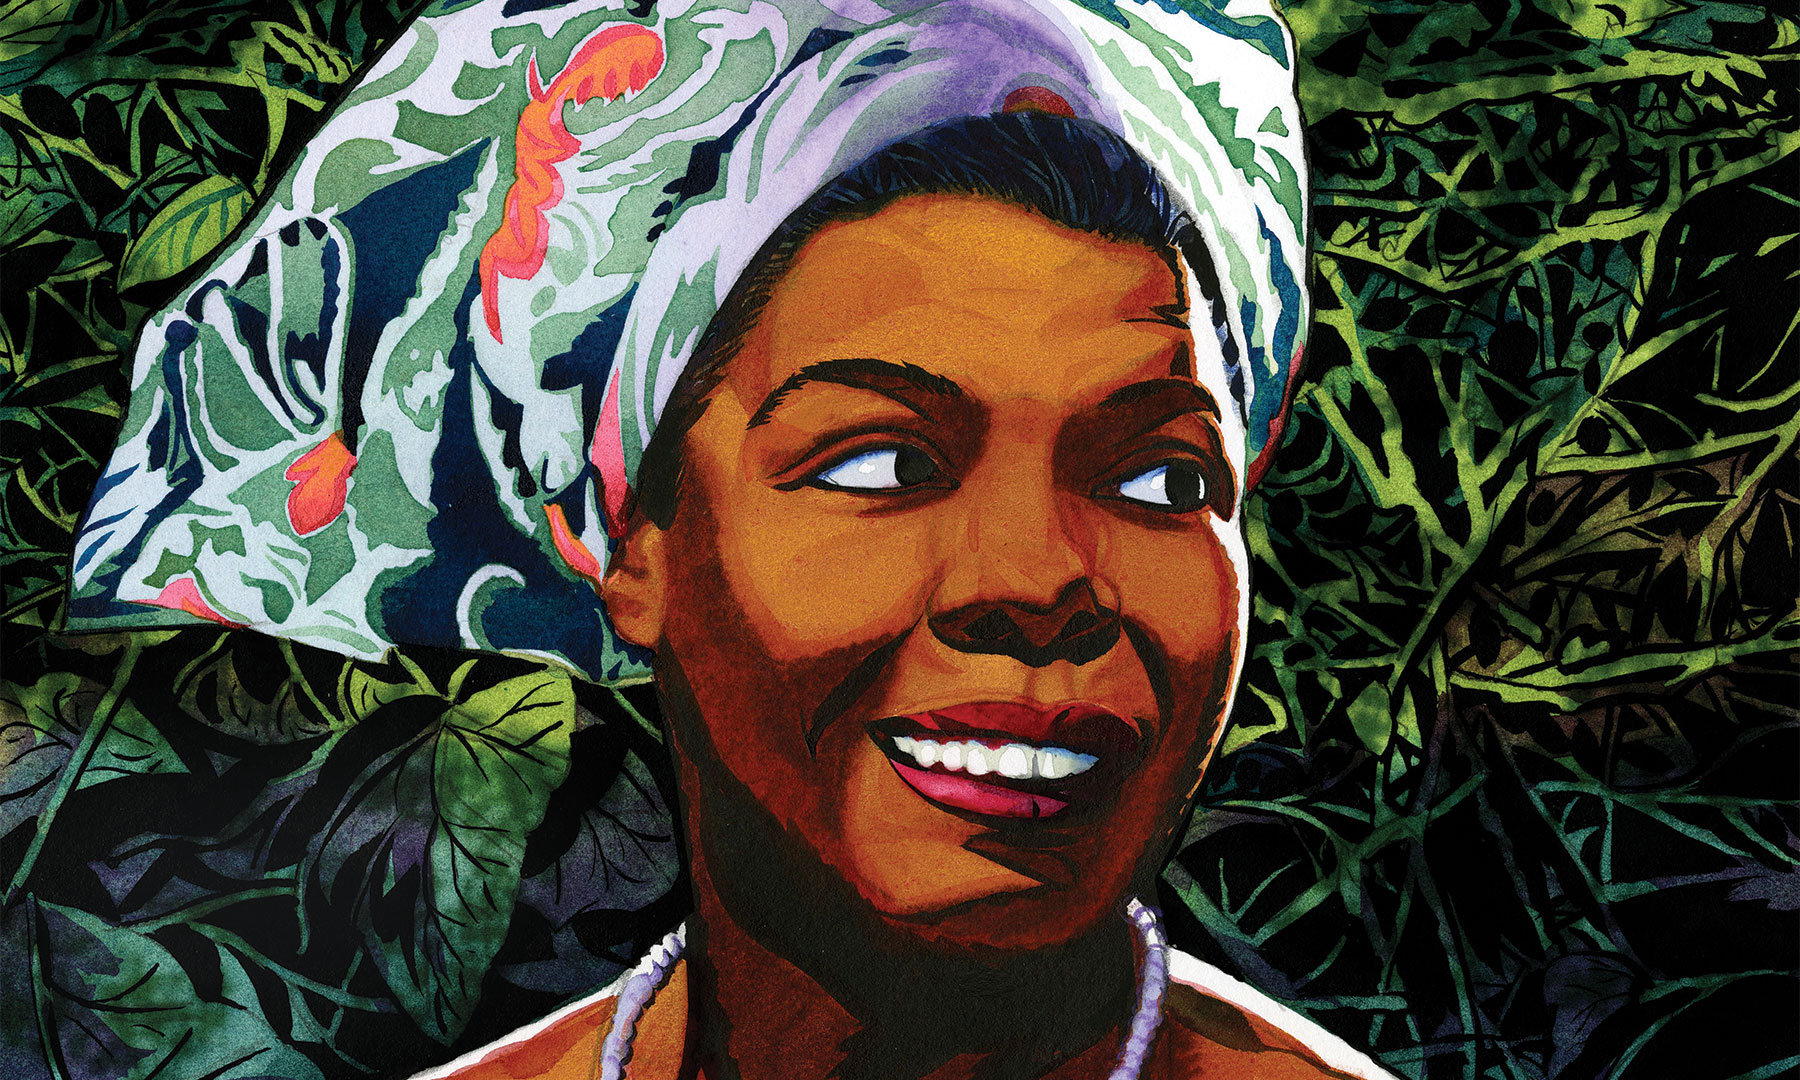 Maya Angelou, TT58, Magazine, Celebrate Maya Angelou, Alice Pettway, Jeffrey Smith, Illustration, Poetry